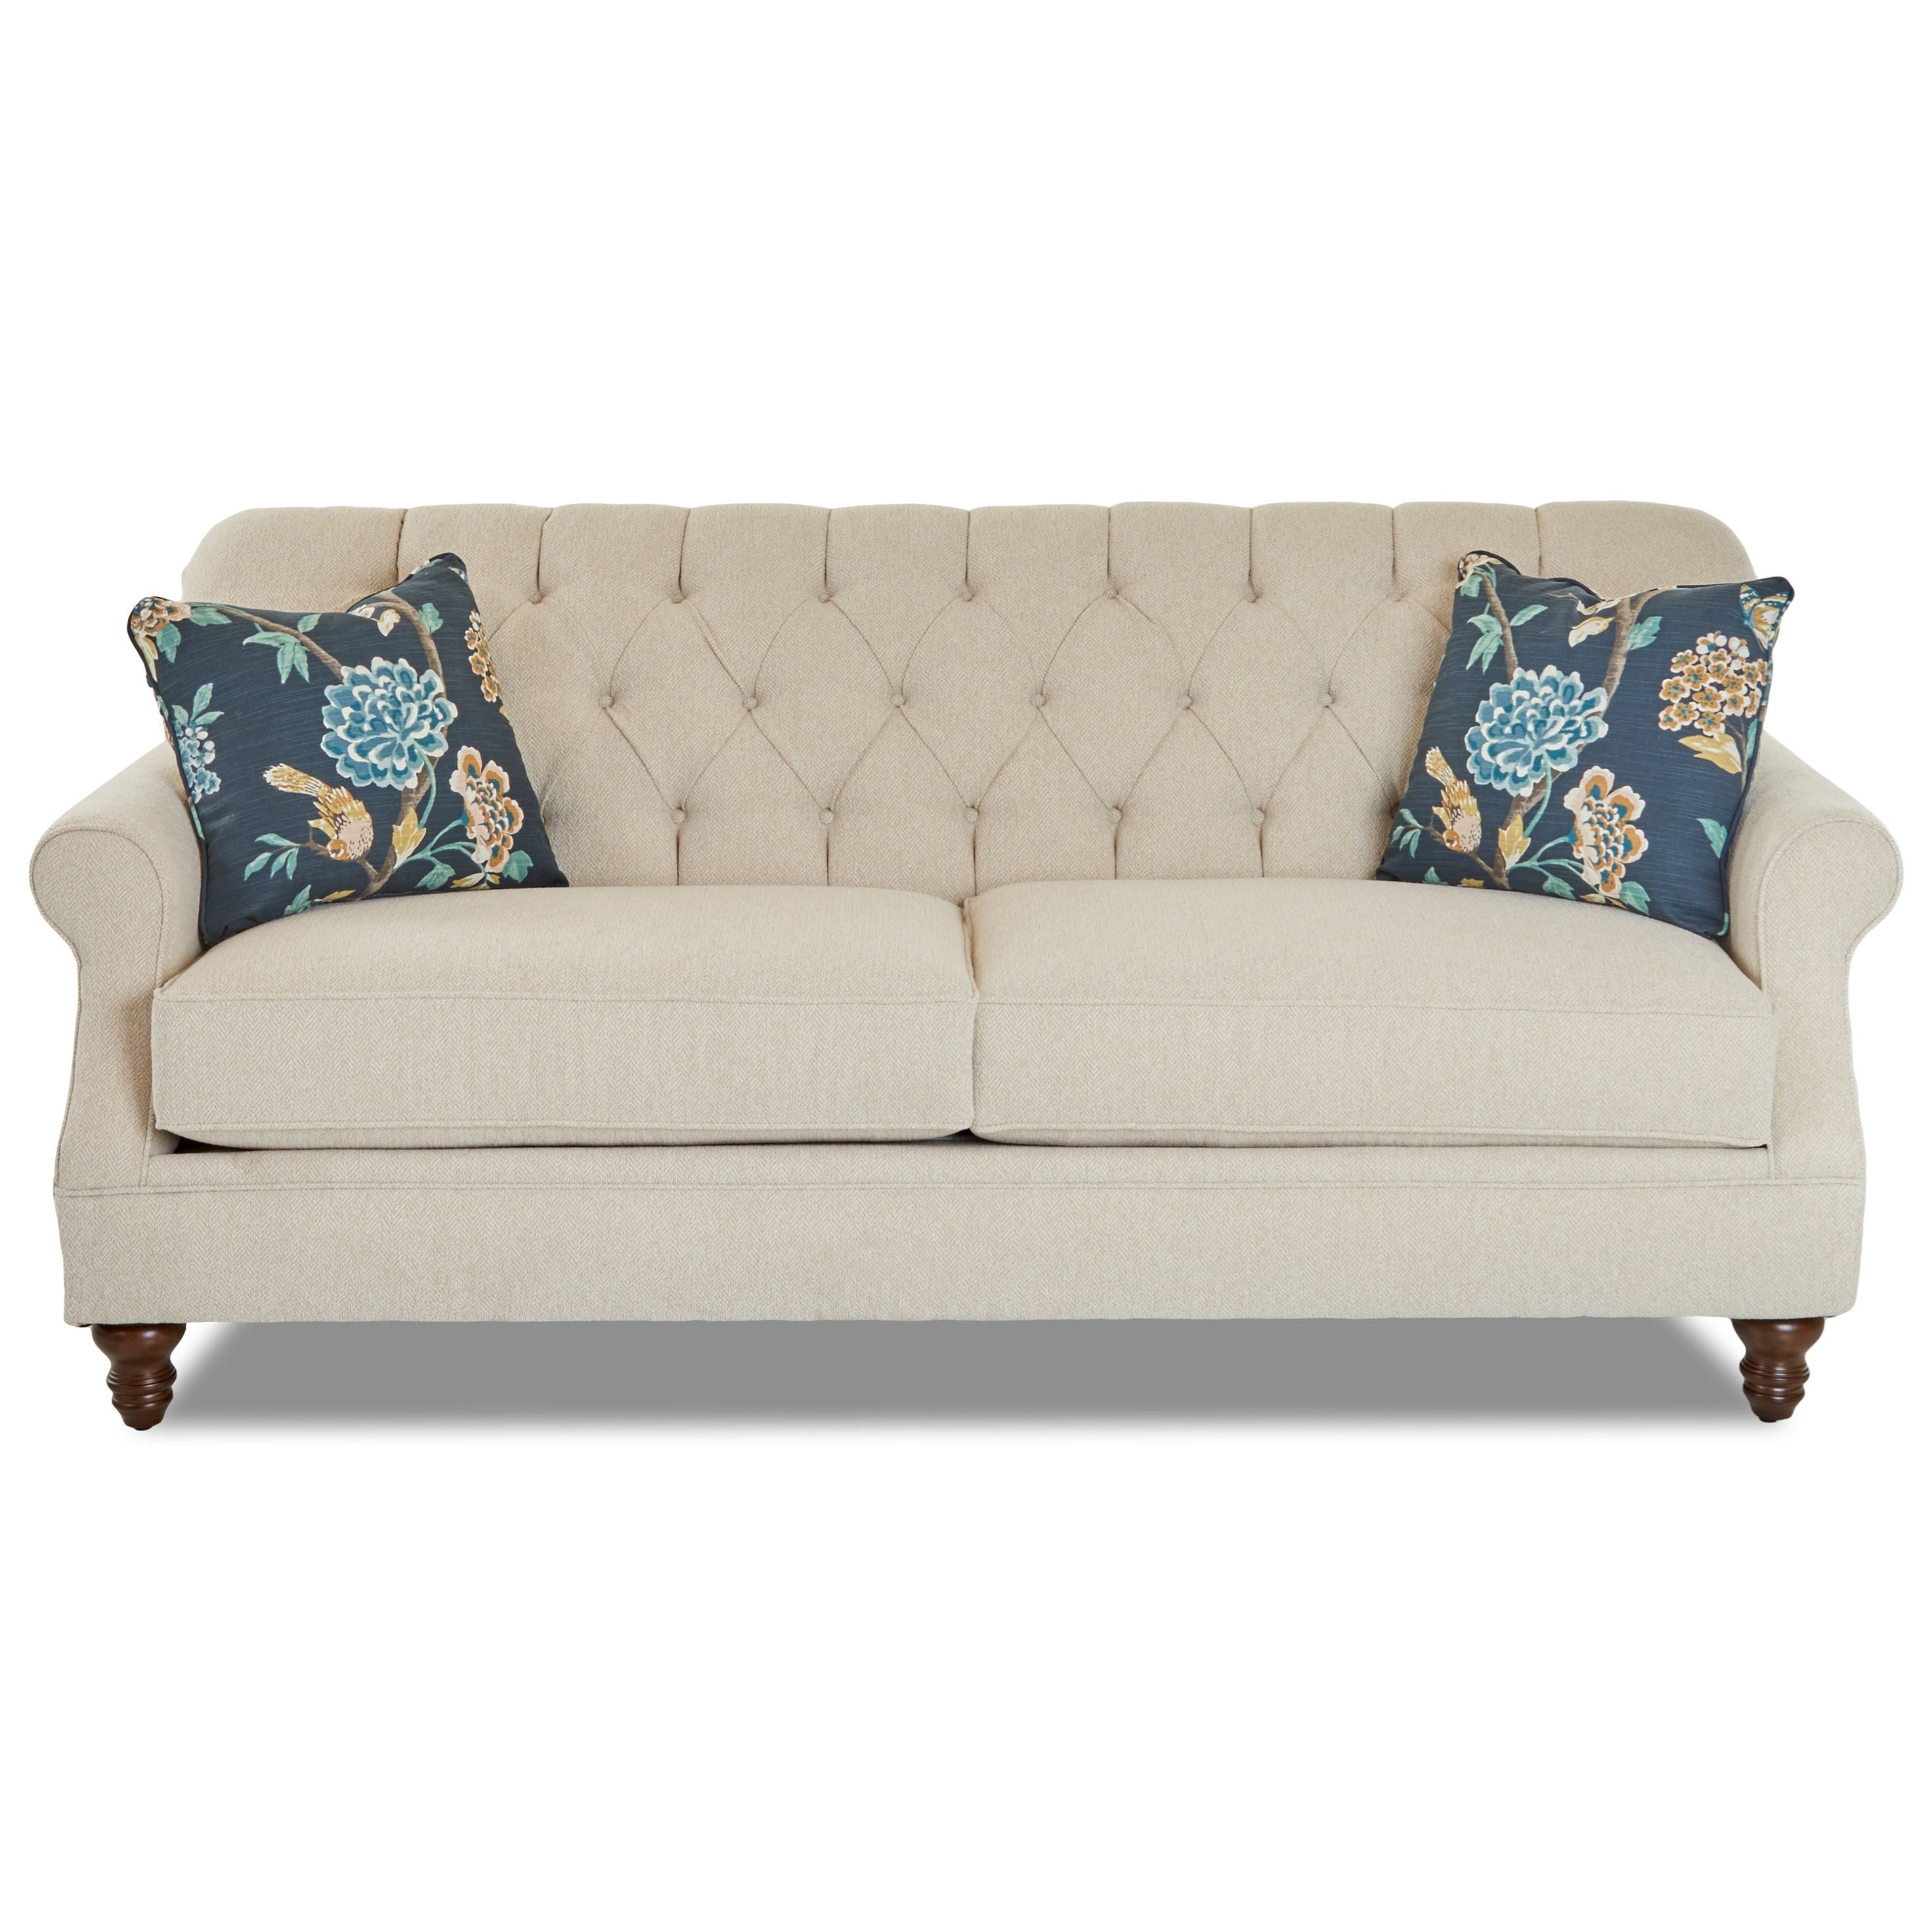 Burbank Sofa by Klaussner at Johnny Janosik